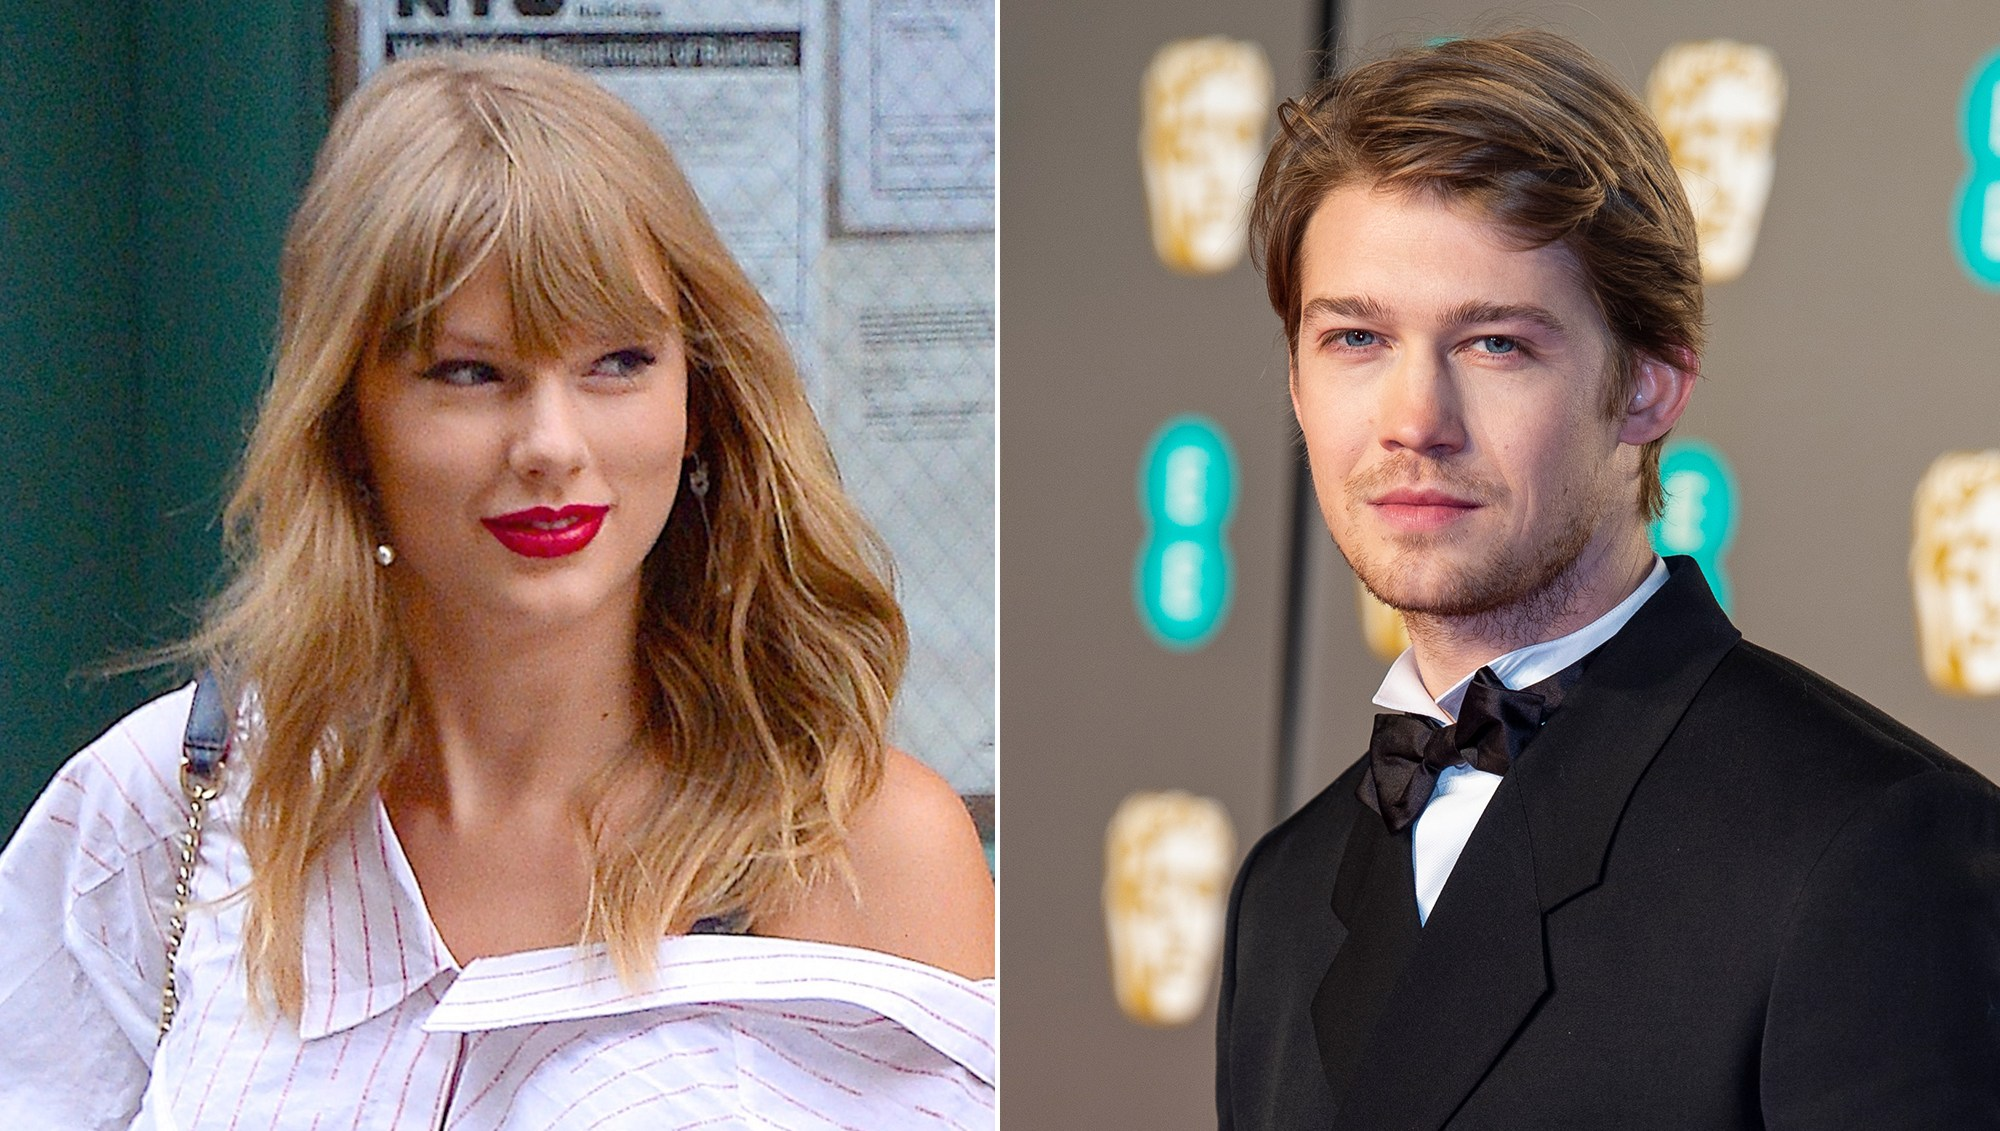 Taylor Swift's Friends Are Practically Placing Bets on When Joe Alwyn Will Propose